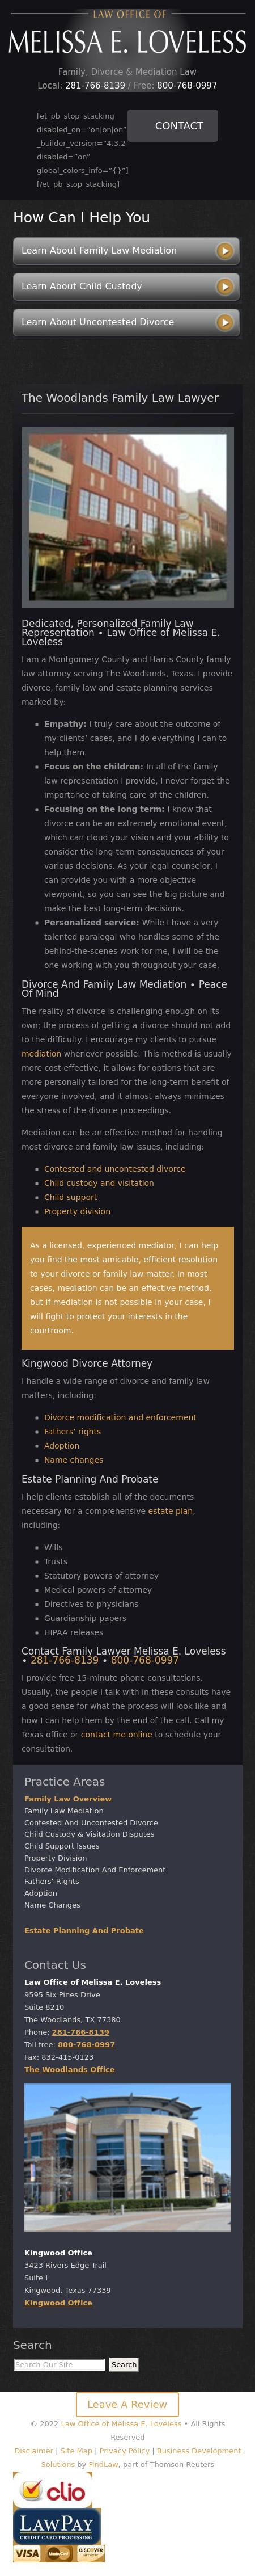 Law Office of Melissa E. Loveless - Kingwood TX Lawyers